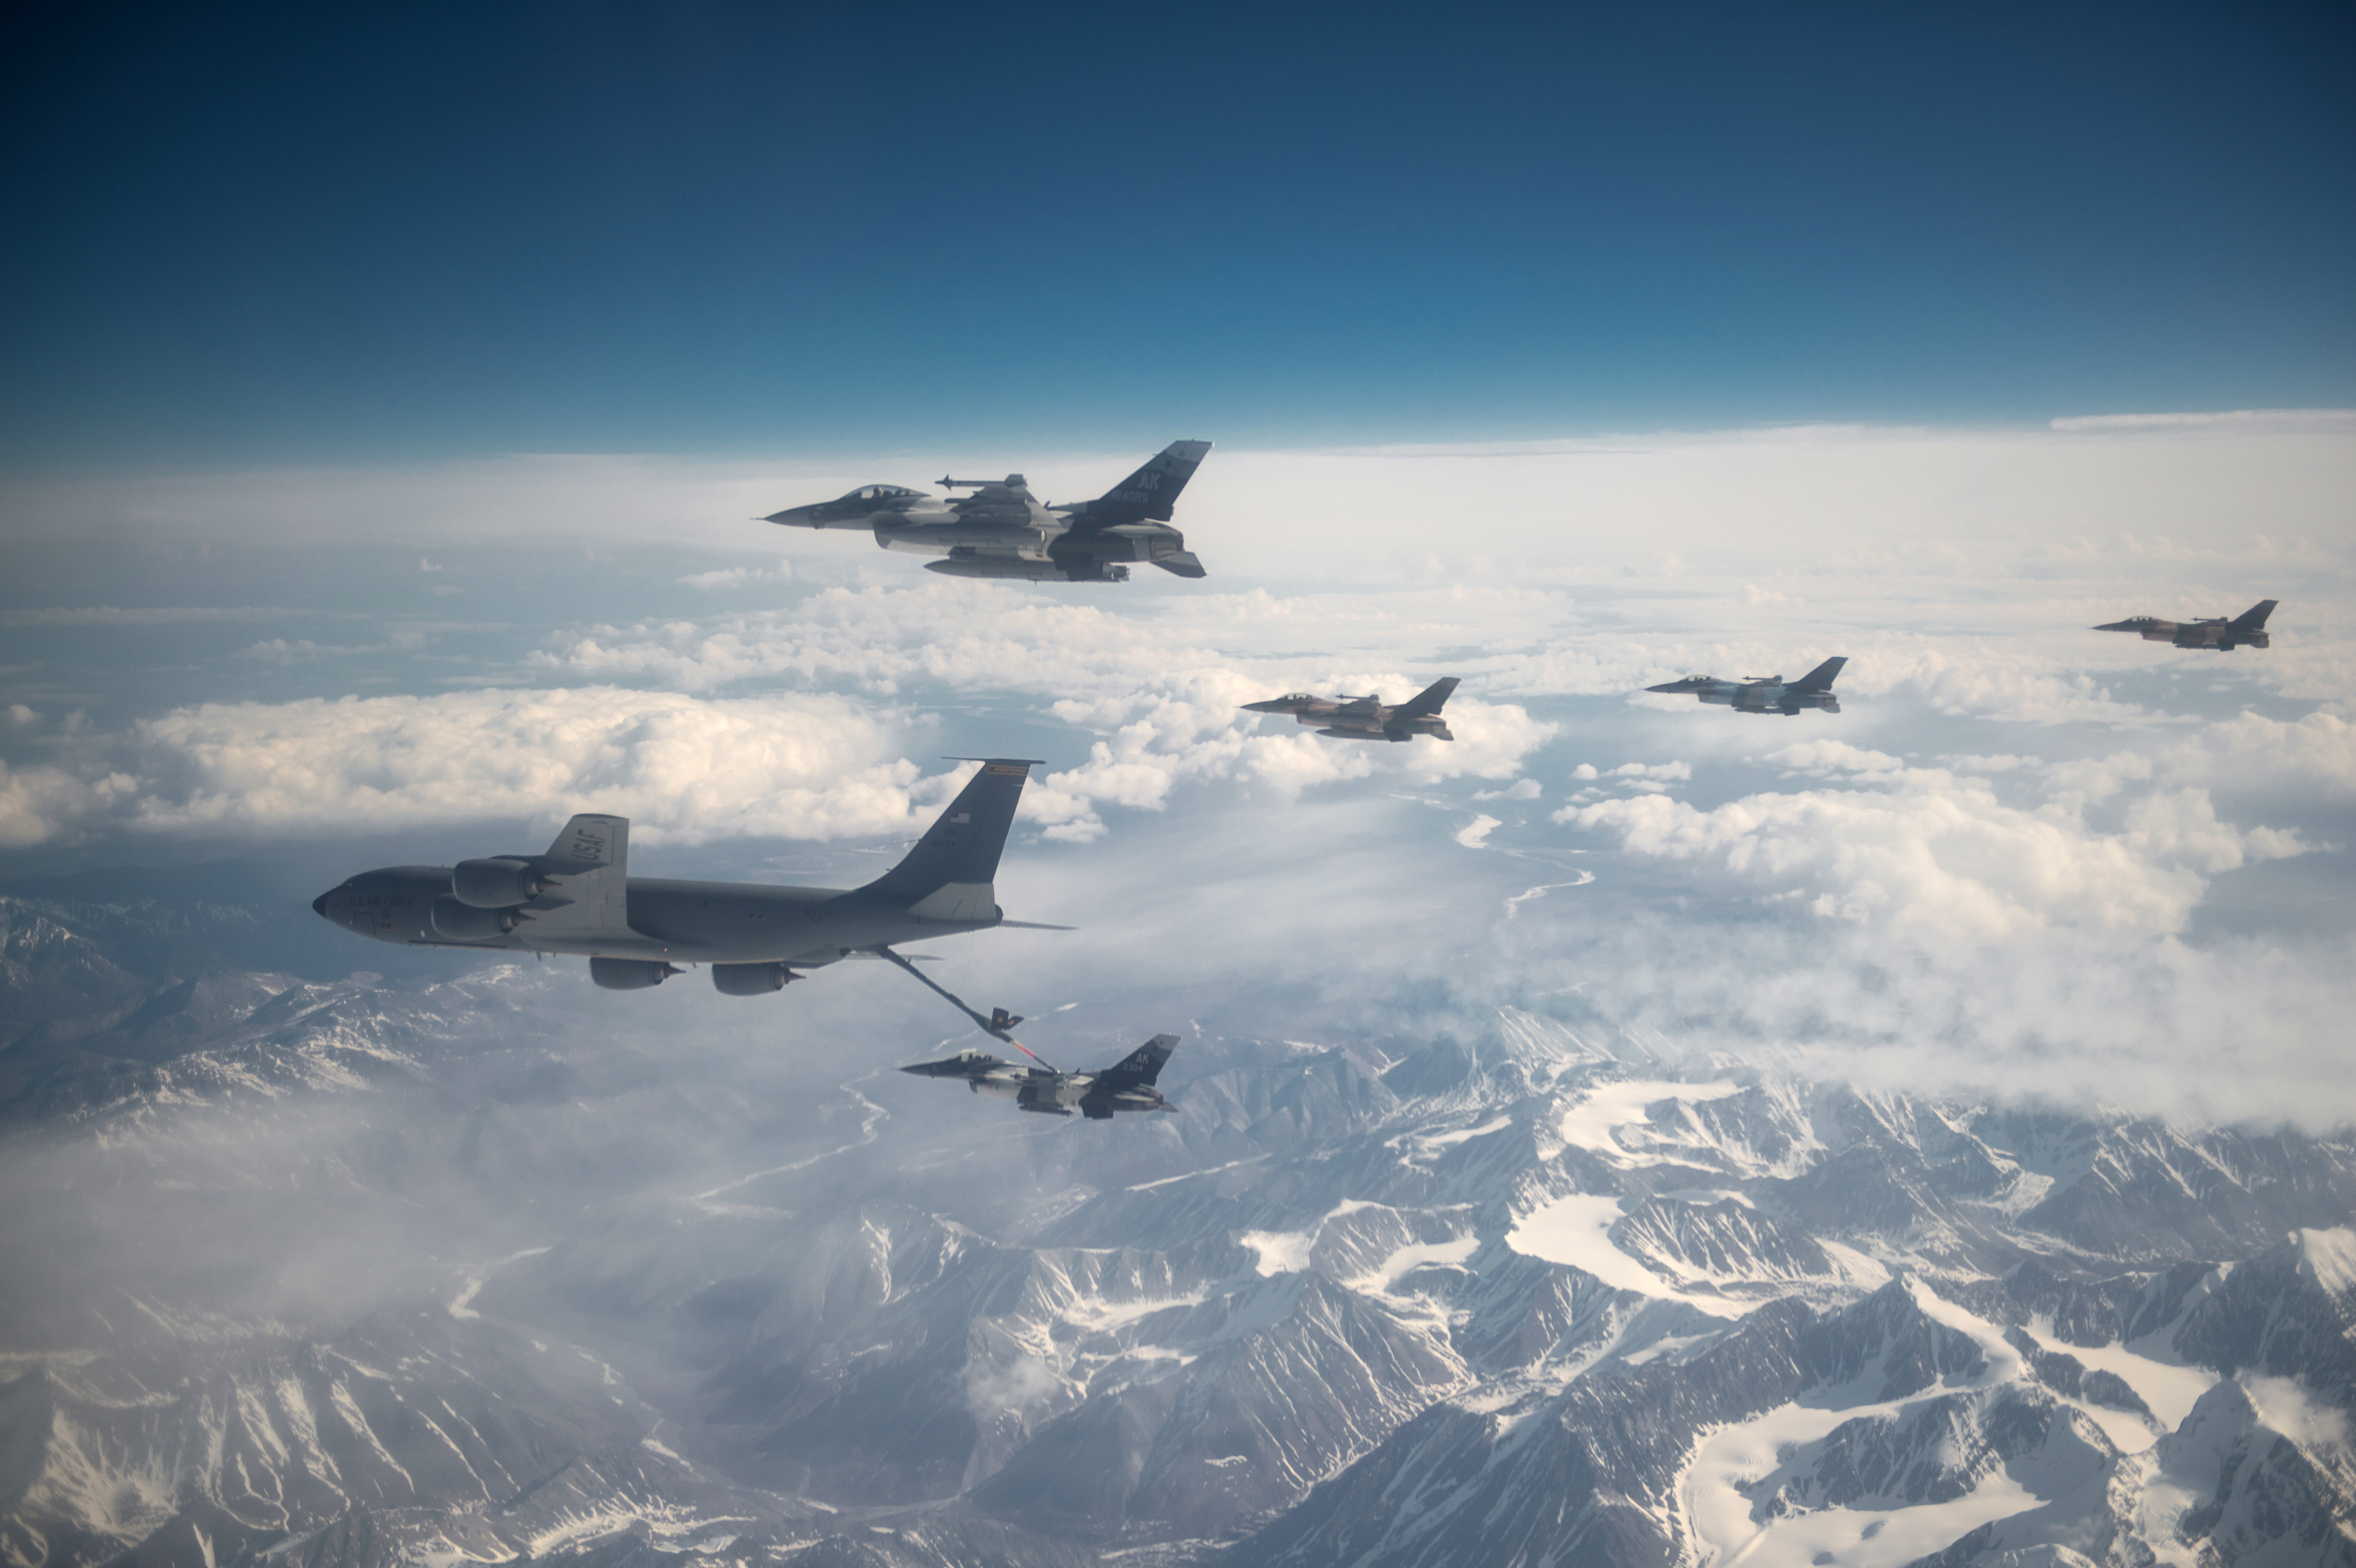 Air Force F-16 Fighting Falcons refuel behind a KC-135 Stratotanker during training operations in Alaska. (Staff Sgt. Shawn Nickel/Air Force)